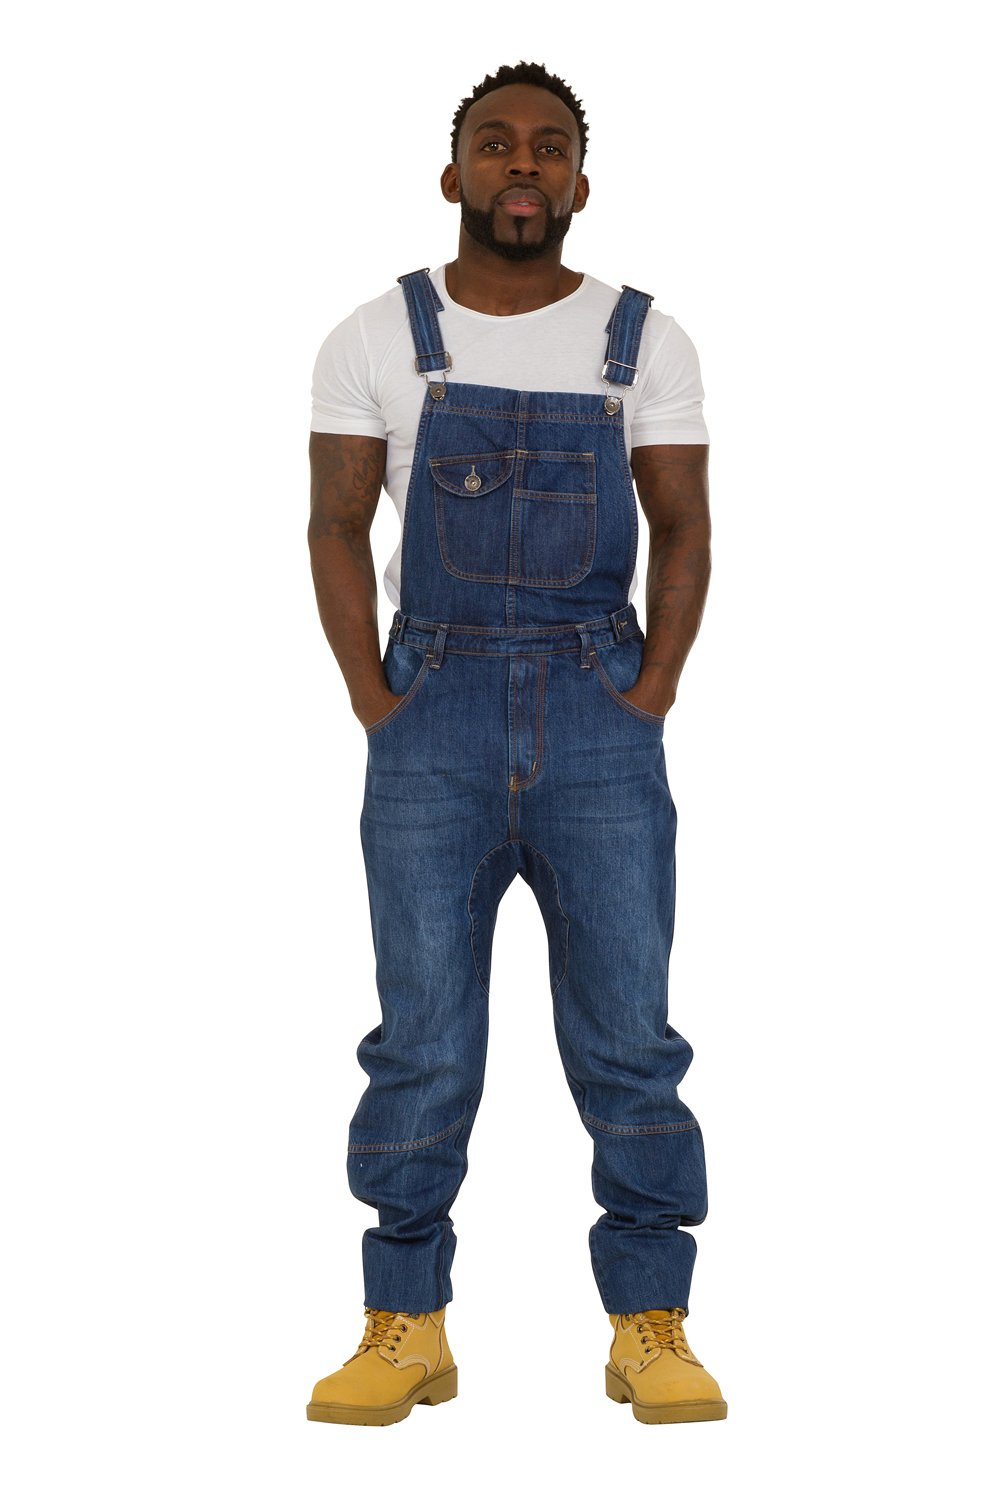 USKEES DANNY Mens Bib Overalls - Relaxed Fit - Darkwash Denim adjustable Loose